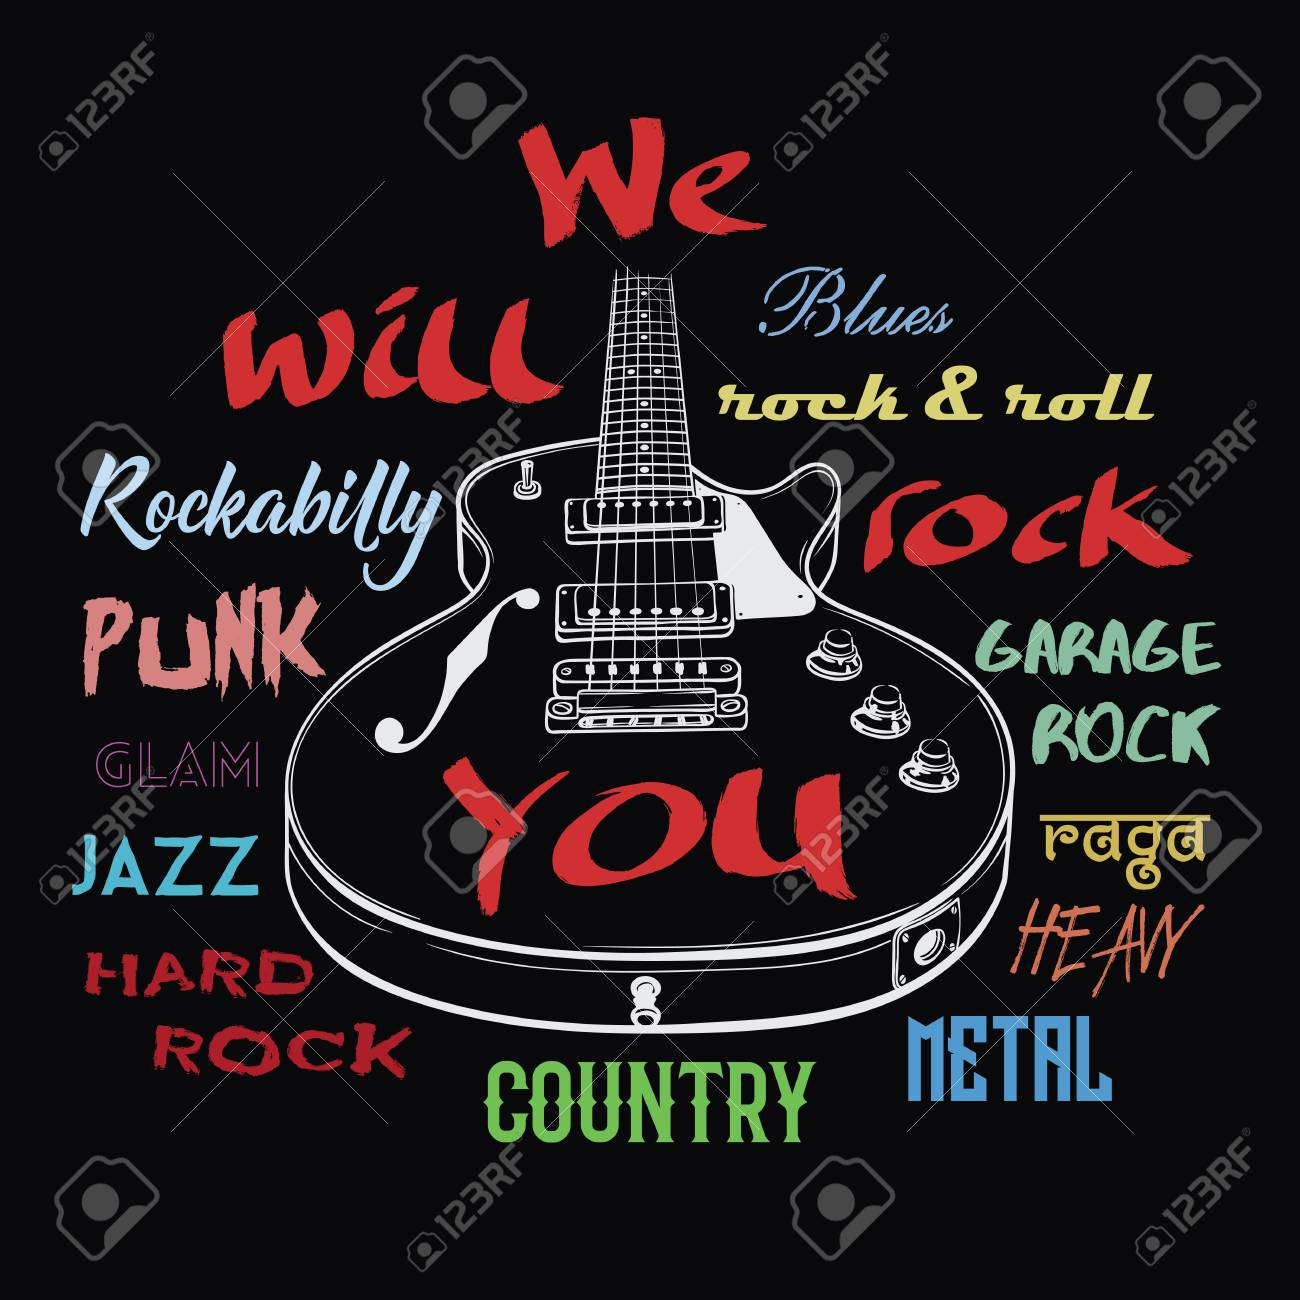 Electric guitar hand drawn illustration. We Will Rock You sign. Rock music typography, tee shirt graphic,art poster. - 99669899